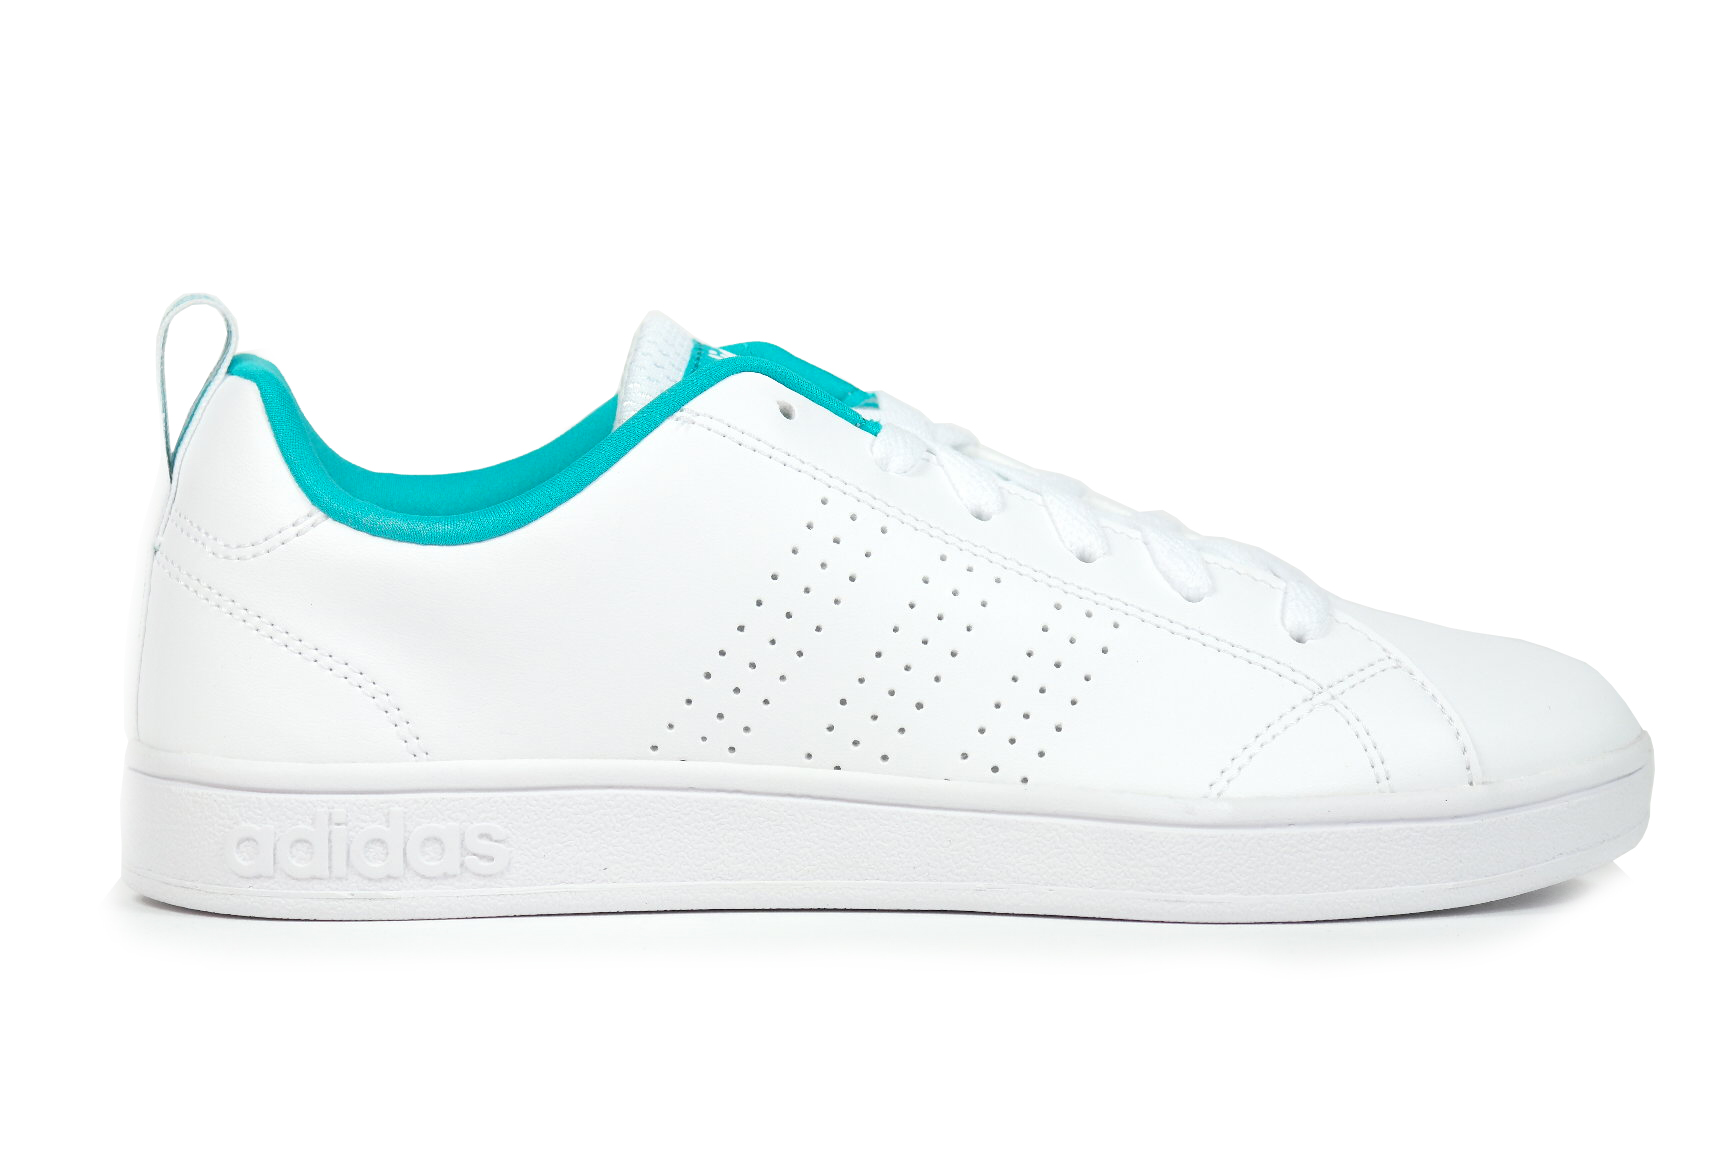 Adidas Advantage Clean VS Dames sneakers